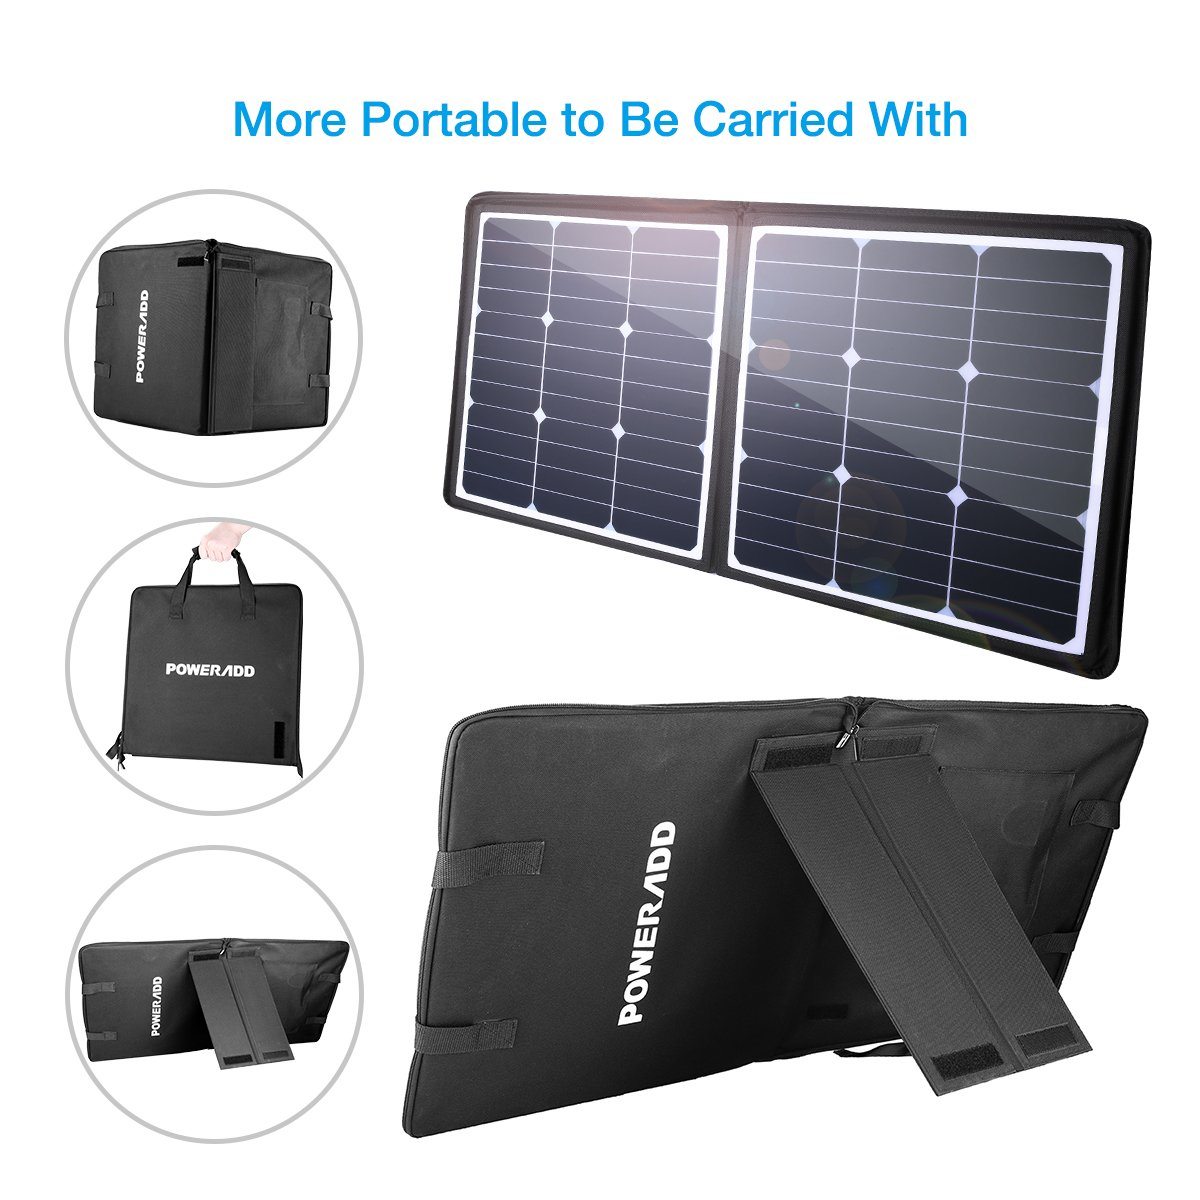 POWERADD [High Efficiency] 50W Solar Charger, 18V 12V SUNPOWER Solar Panel for Laptop, iPhone X / 8/8 Plus, iPad Pro, iPad mini, Macbook, iPad Samsung, ChargerCenter, Island Region and Country Tours by POWERADD (Image #6)